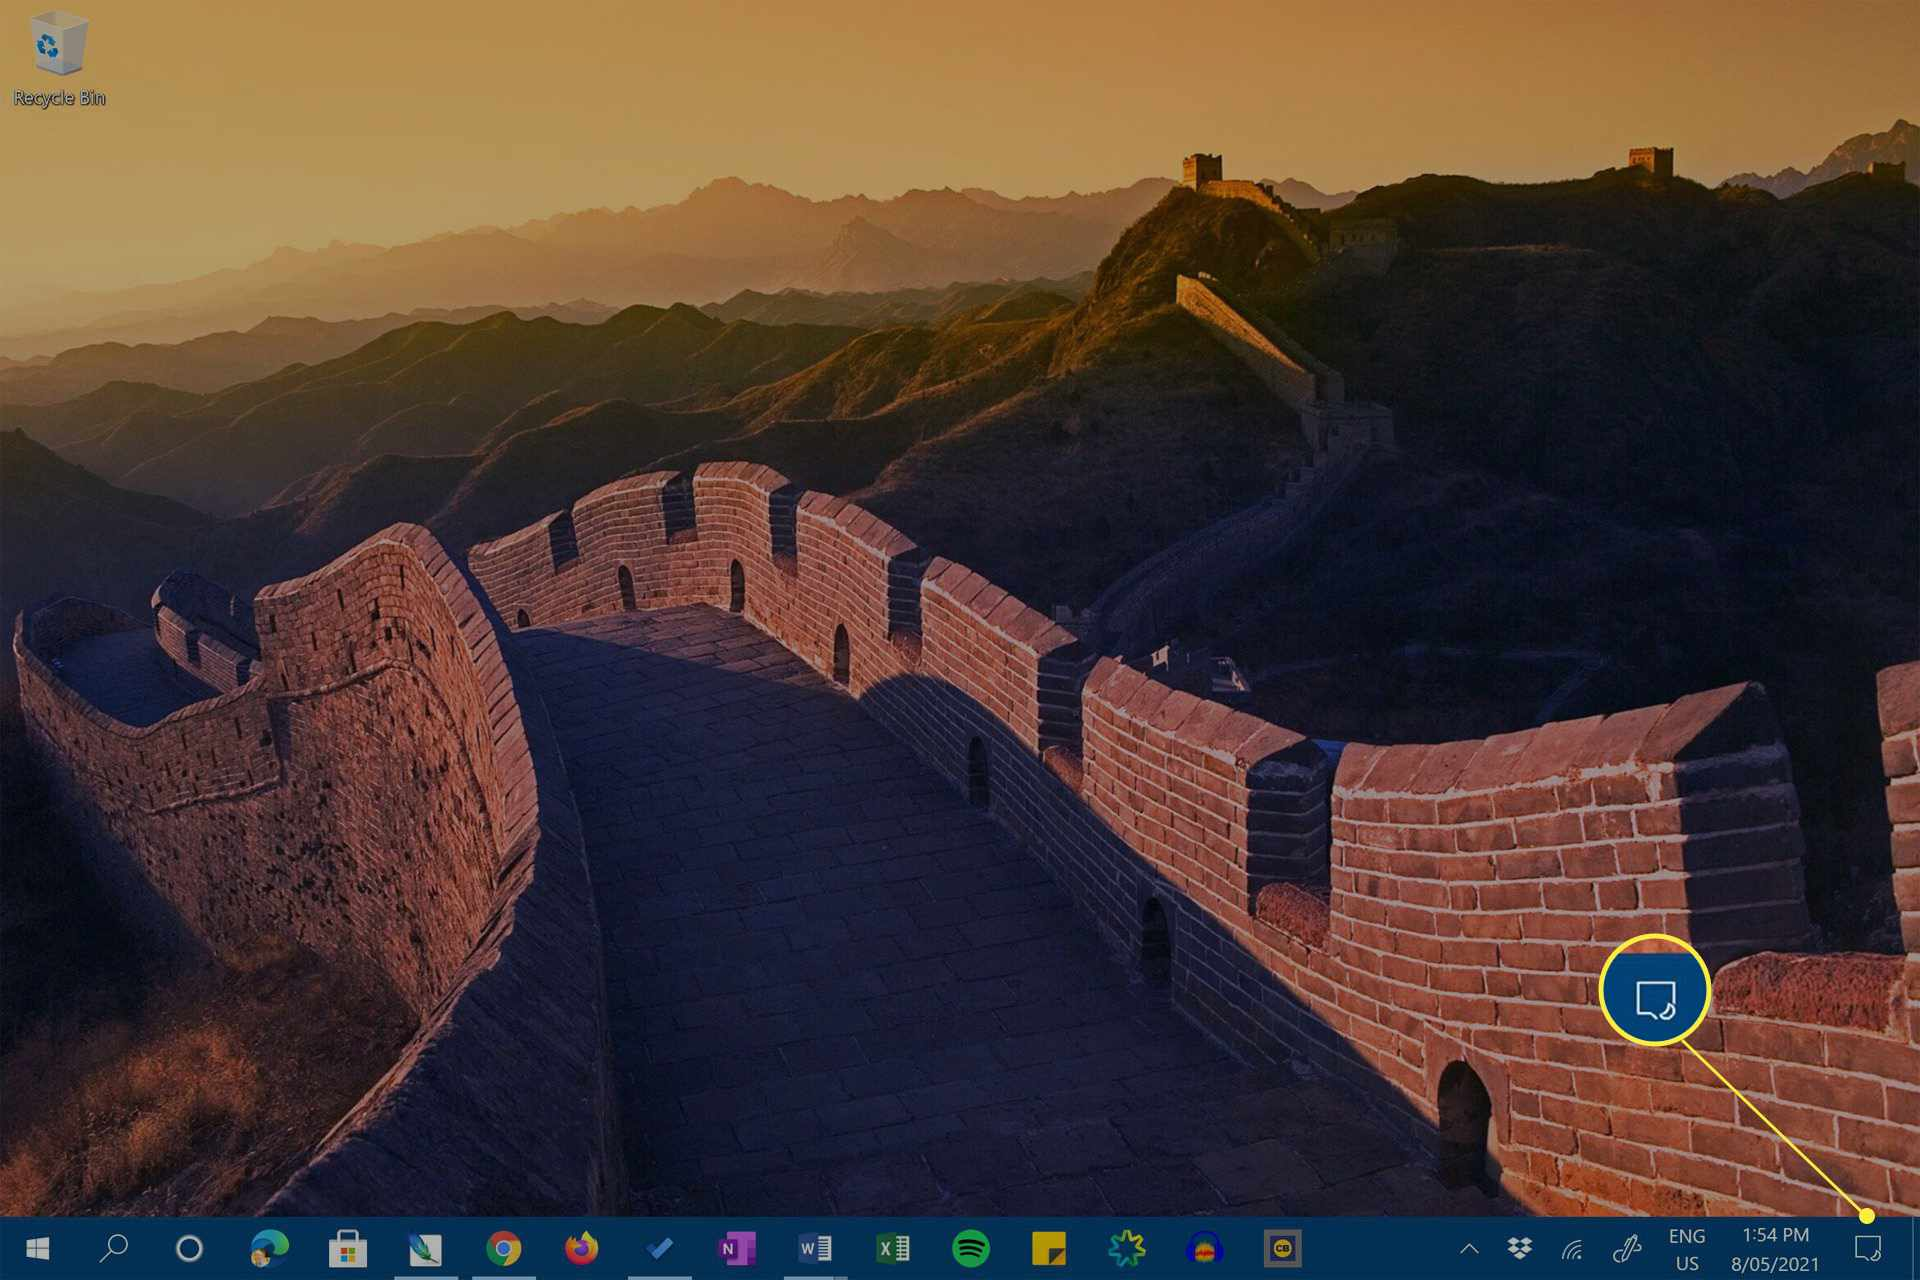 Windows 10 desktop on a Microsoft Surface Pro with Action Center icon highlighted